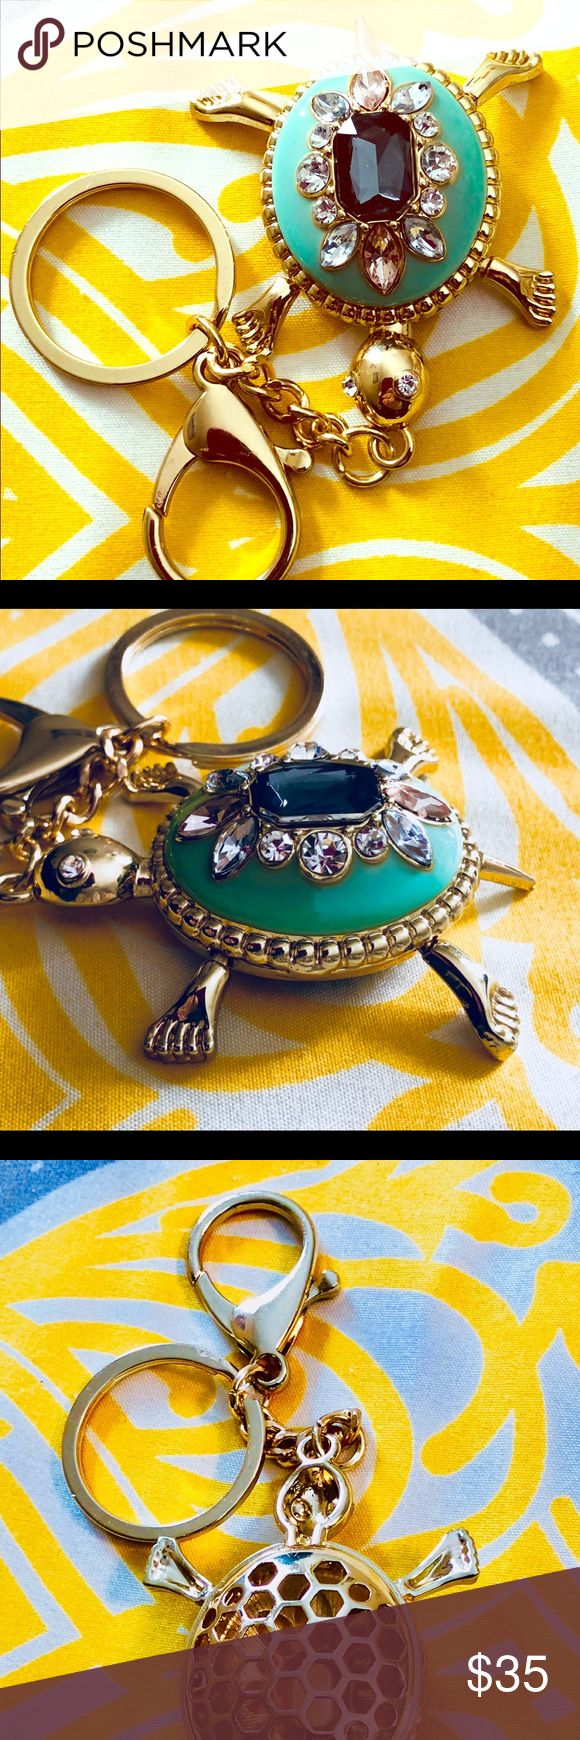 Best 25 feng shui luck ideas on pinterest feng shui candles for tiffany golden covered turtle key chain reviewsmspy